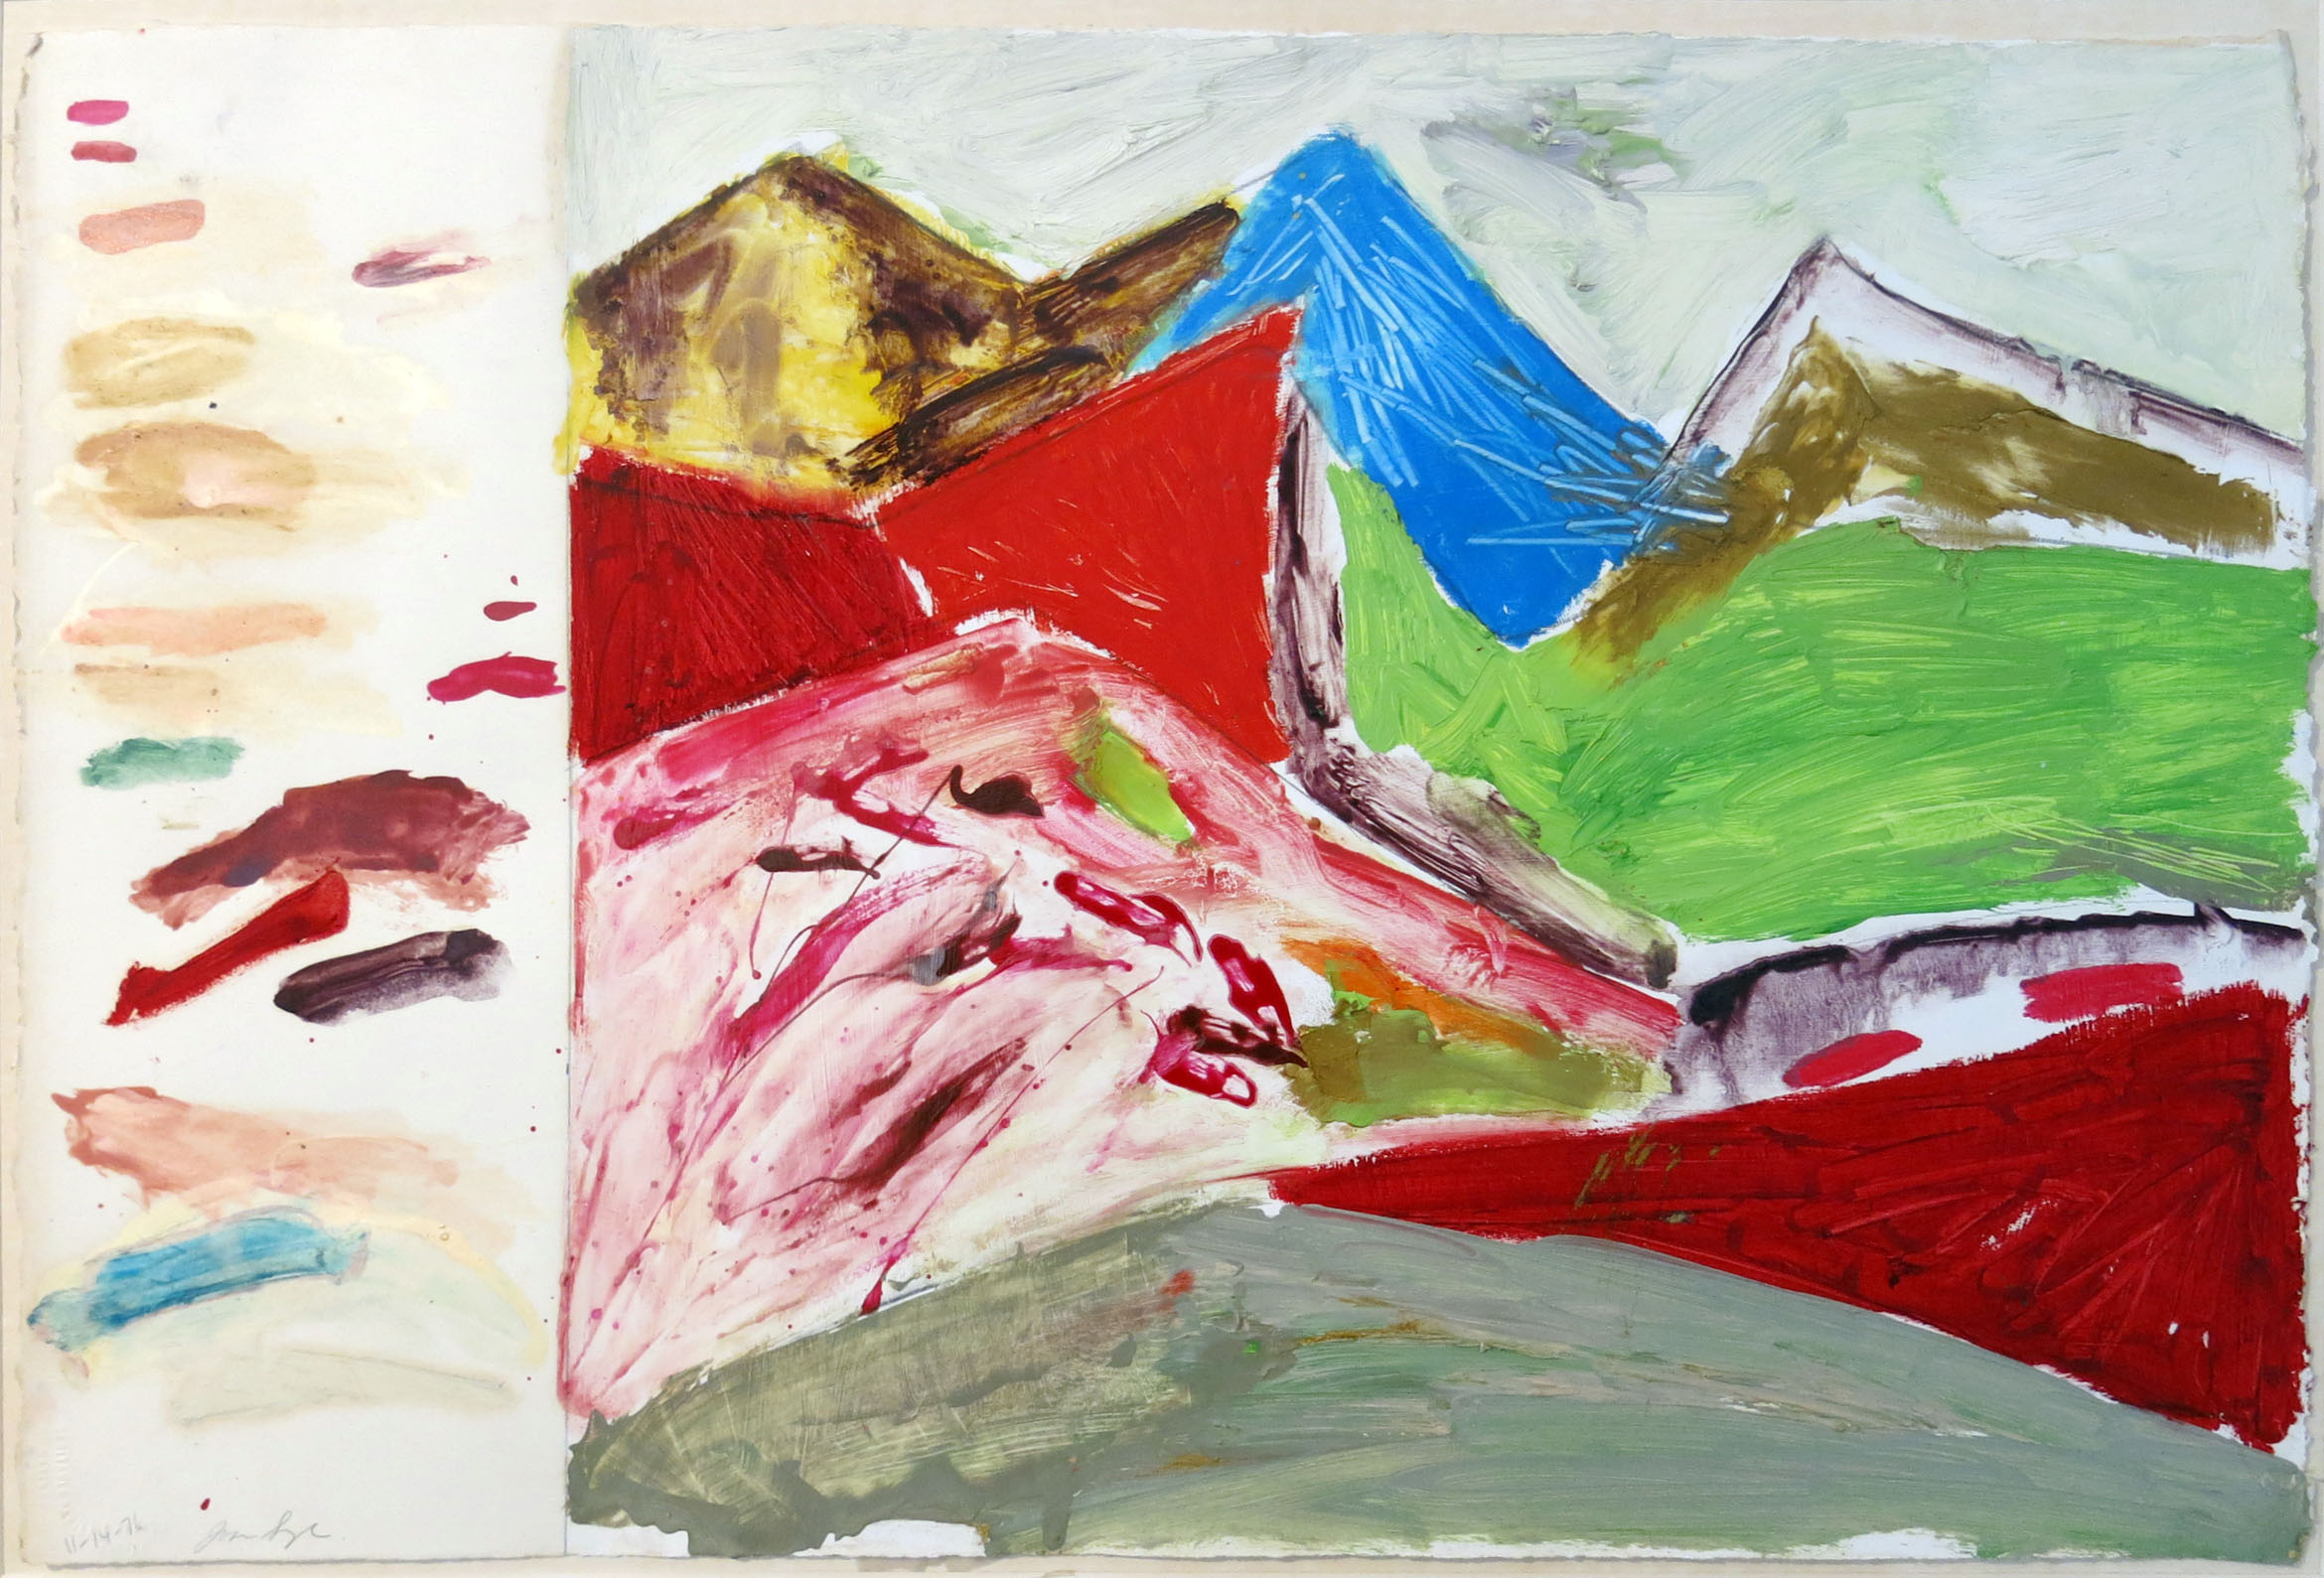 Joan Snyder, Untitled, 1976, Mixed media on paper, 15.5h x 22.5w in